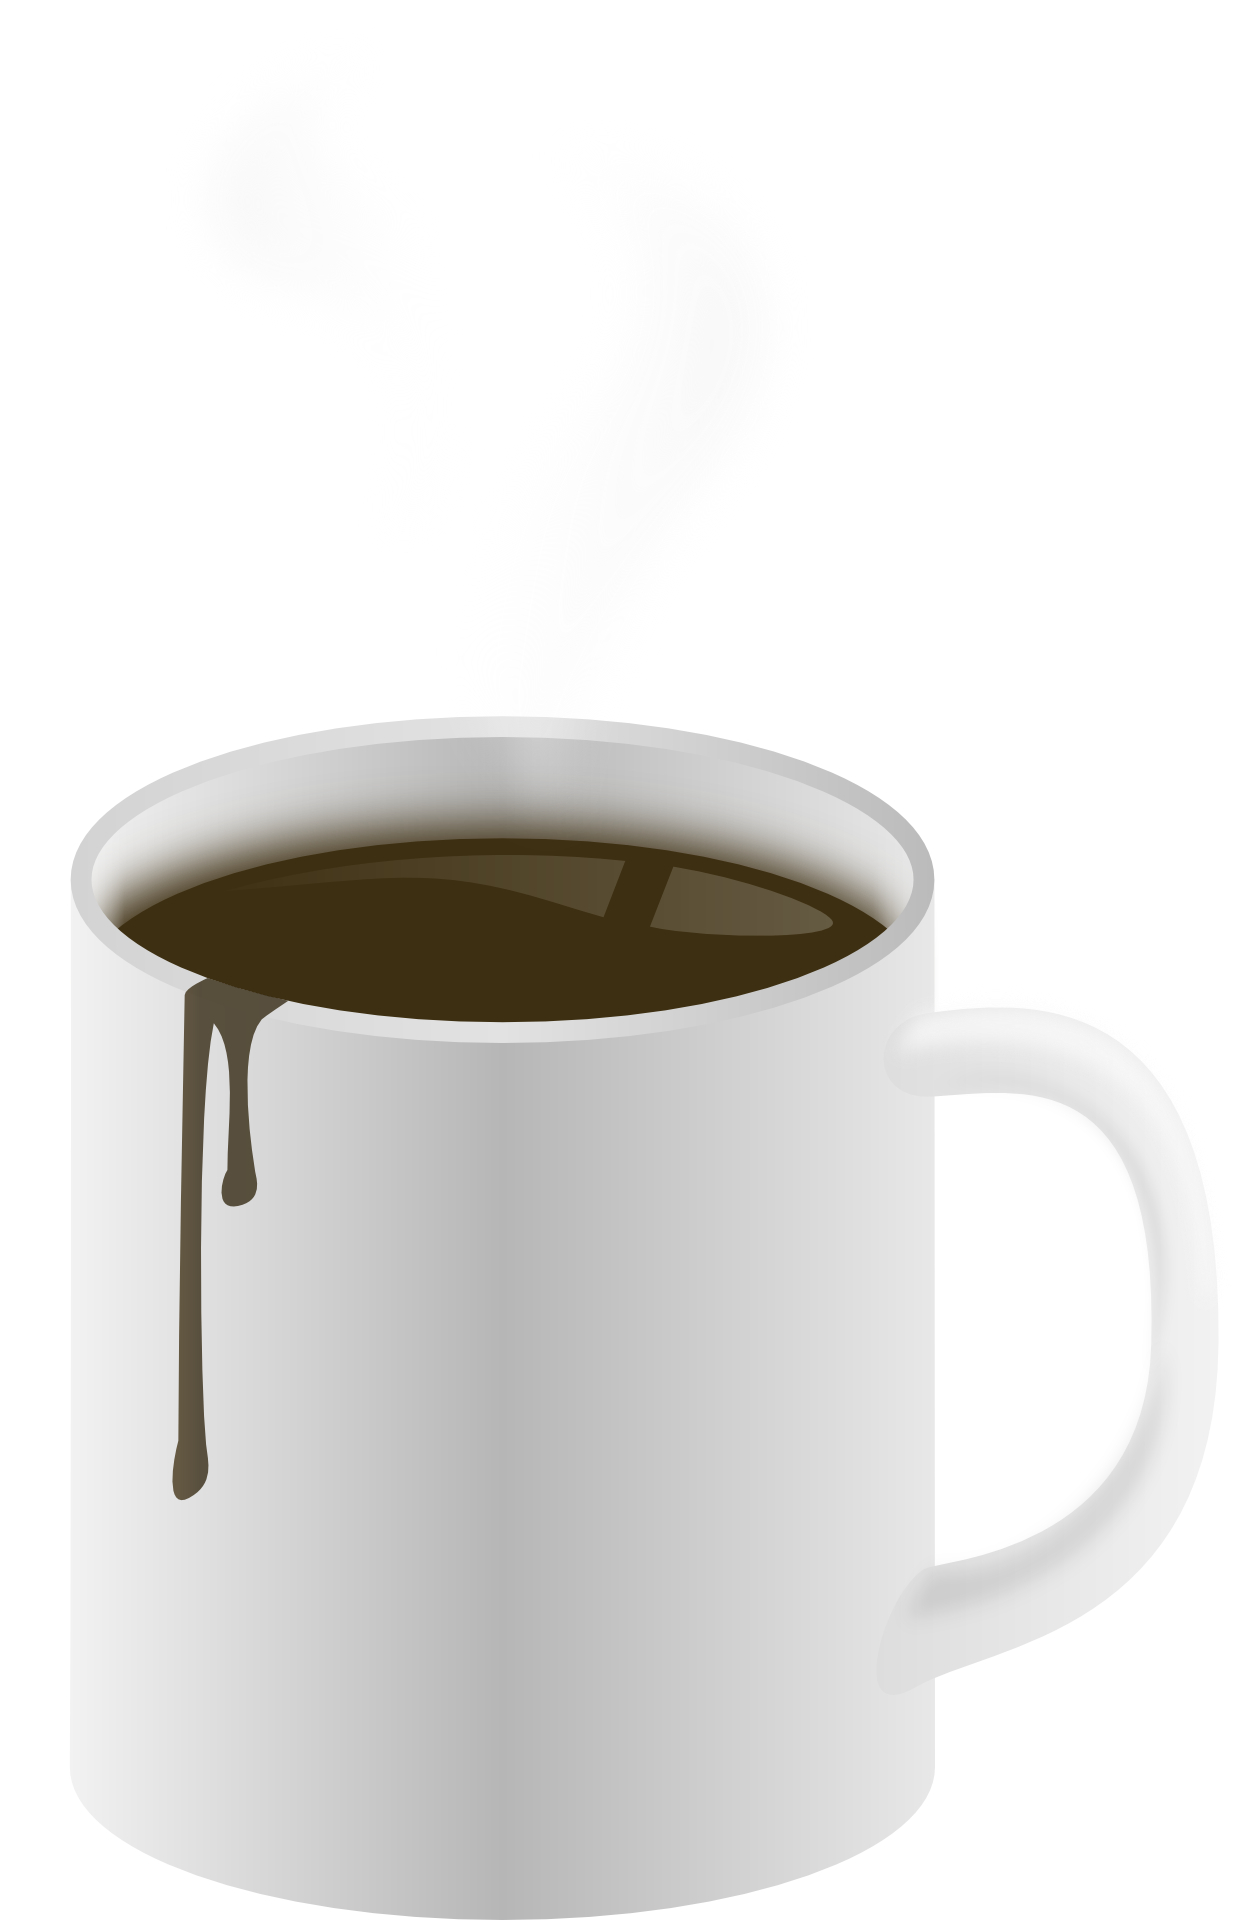 Coffee cup,mug vector,drink,coffee